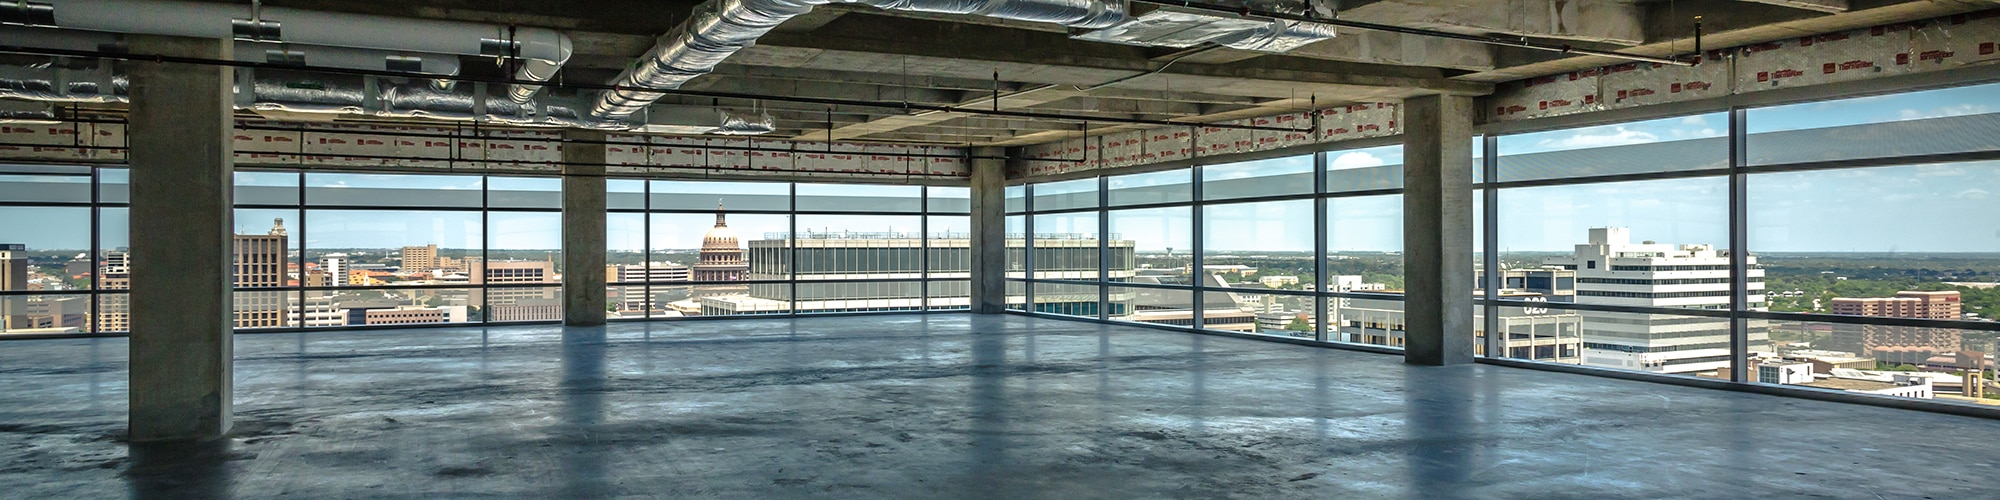 210 West 7th Street | The University of Texas System Building Interior